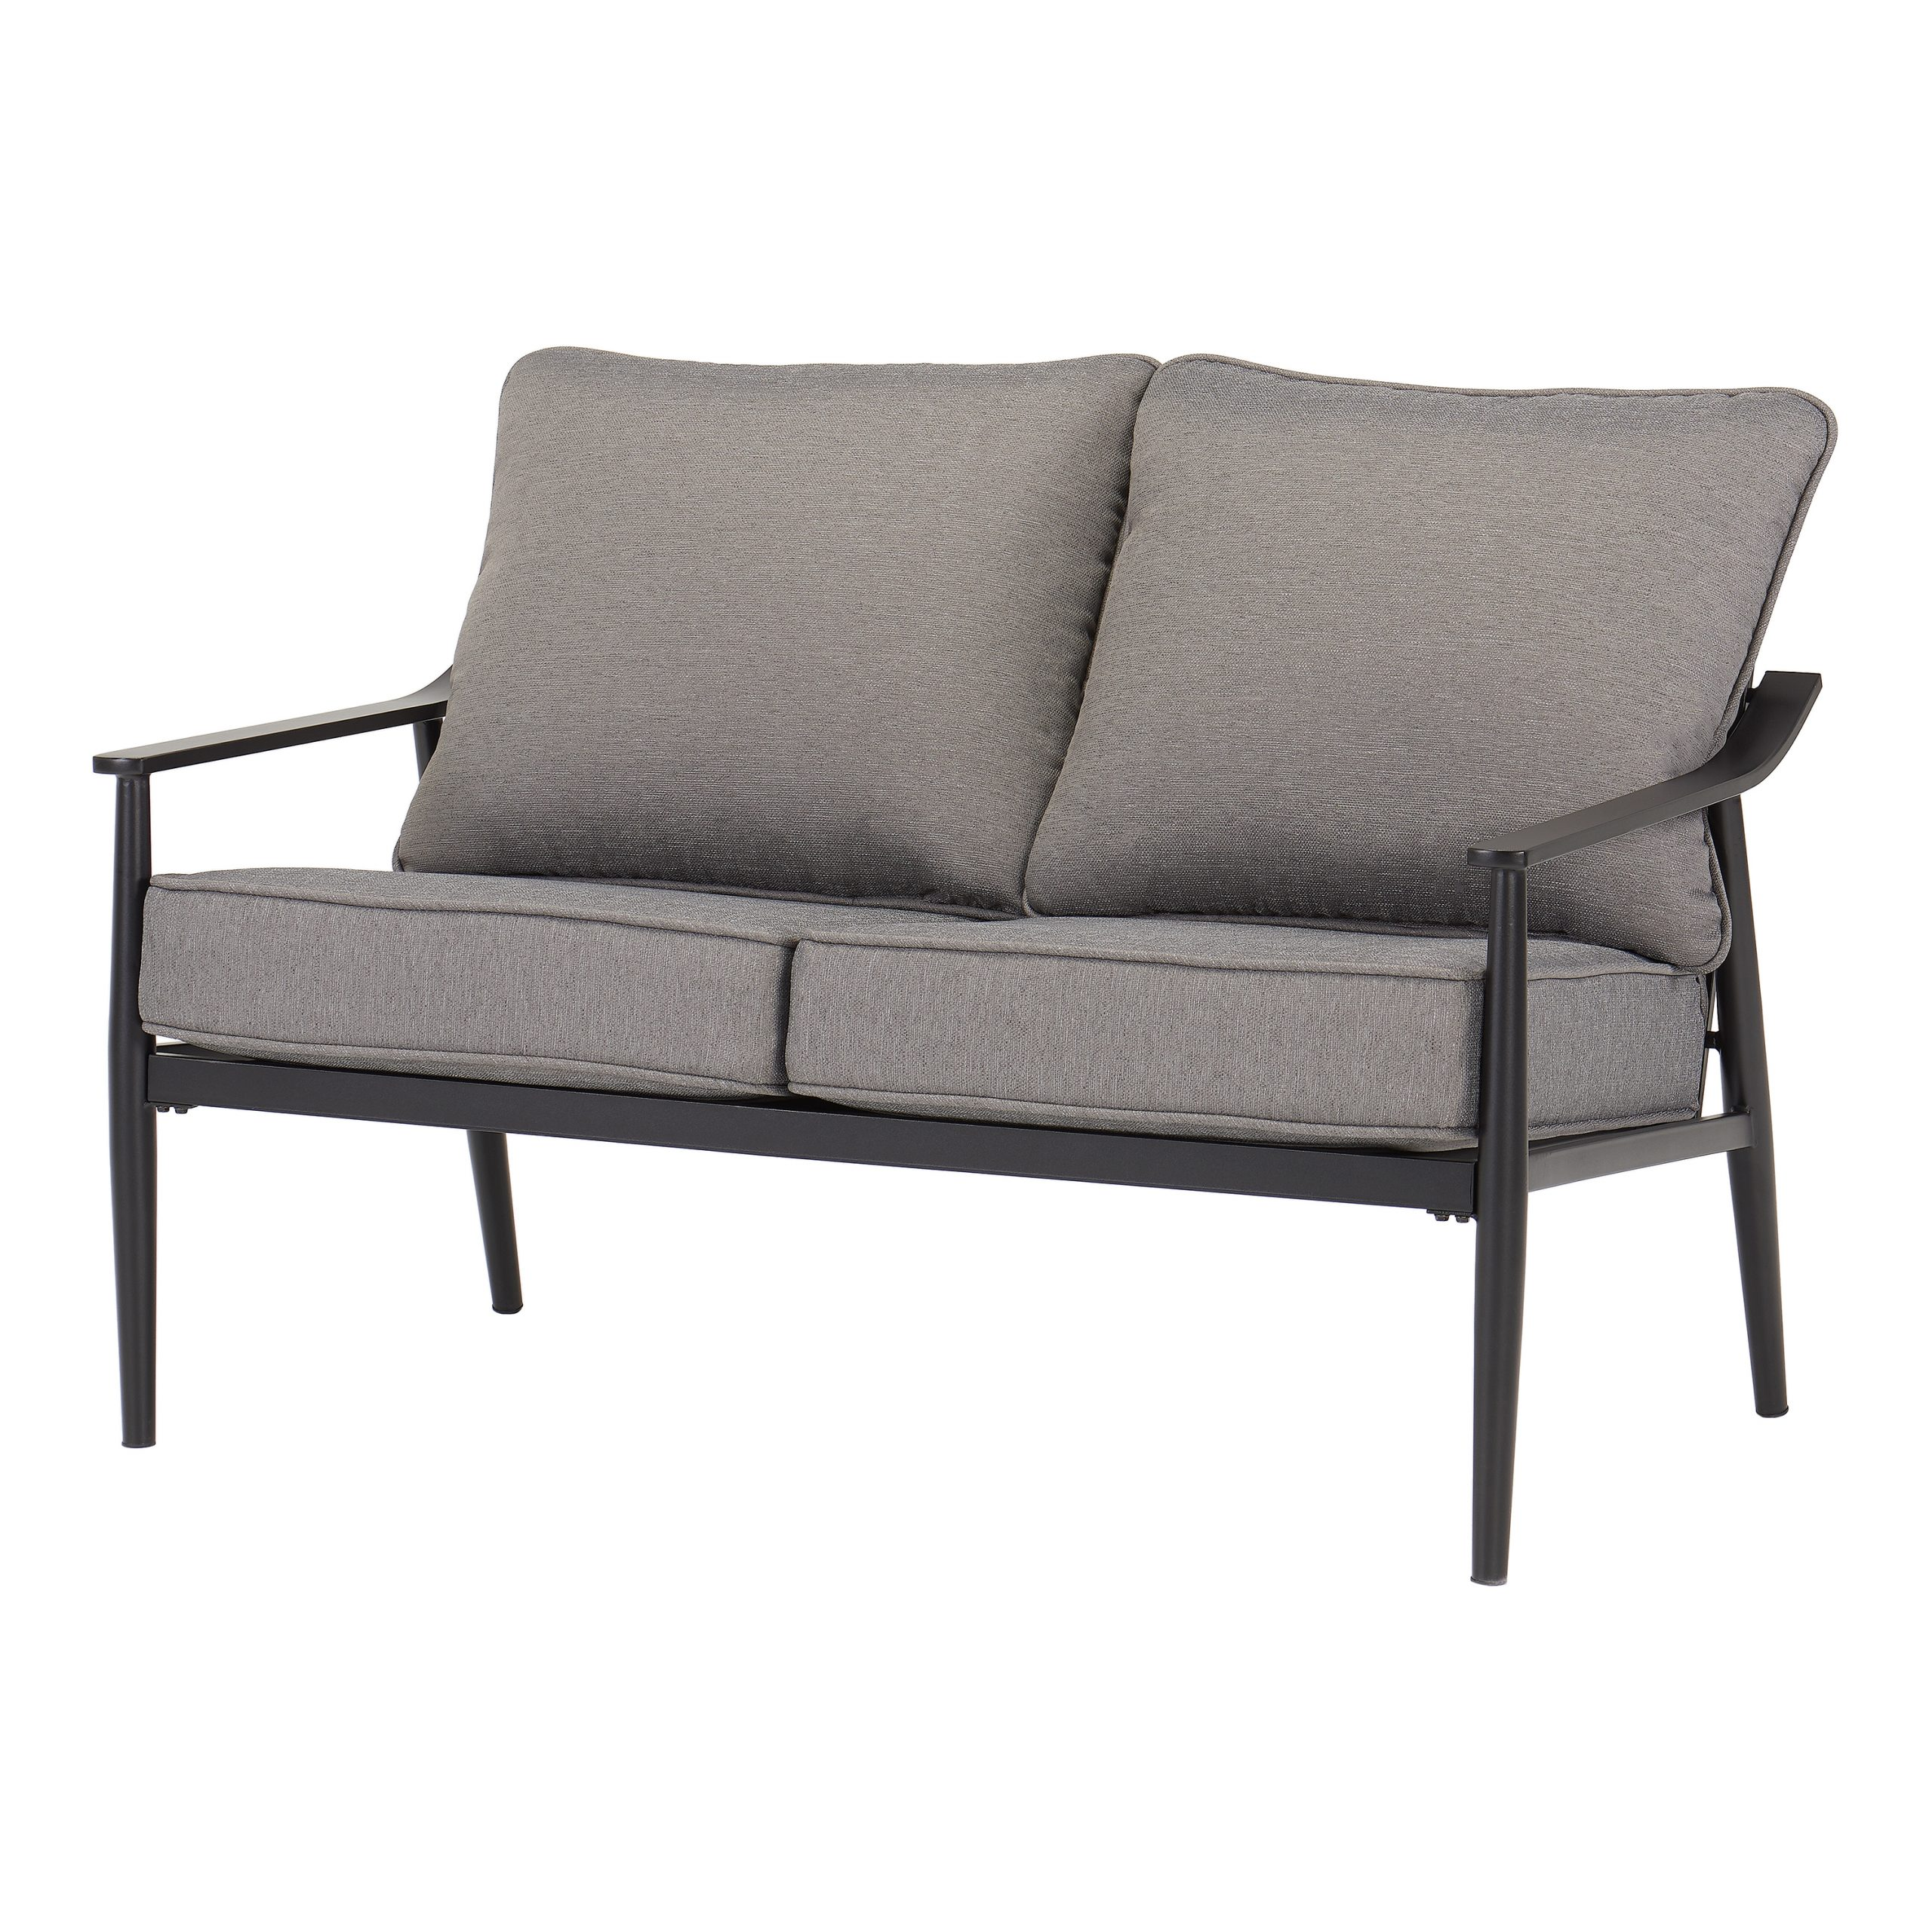 Better Homes & Gardens Acadia 2 Piece Patio Loveseat Set With Gray Cushions – Walmart Pertaining To Trendy Dayse Contemporary Loveseats With Cushion (View 20 of 25)